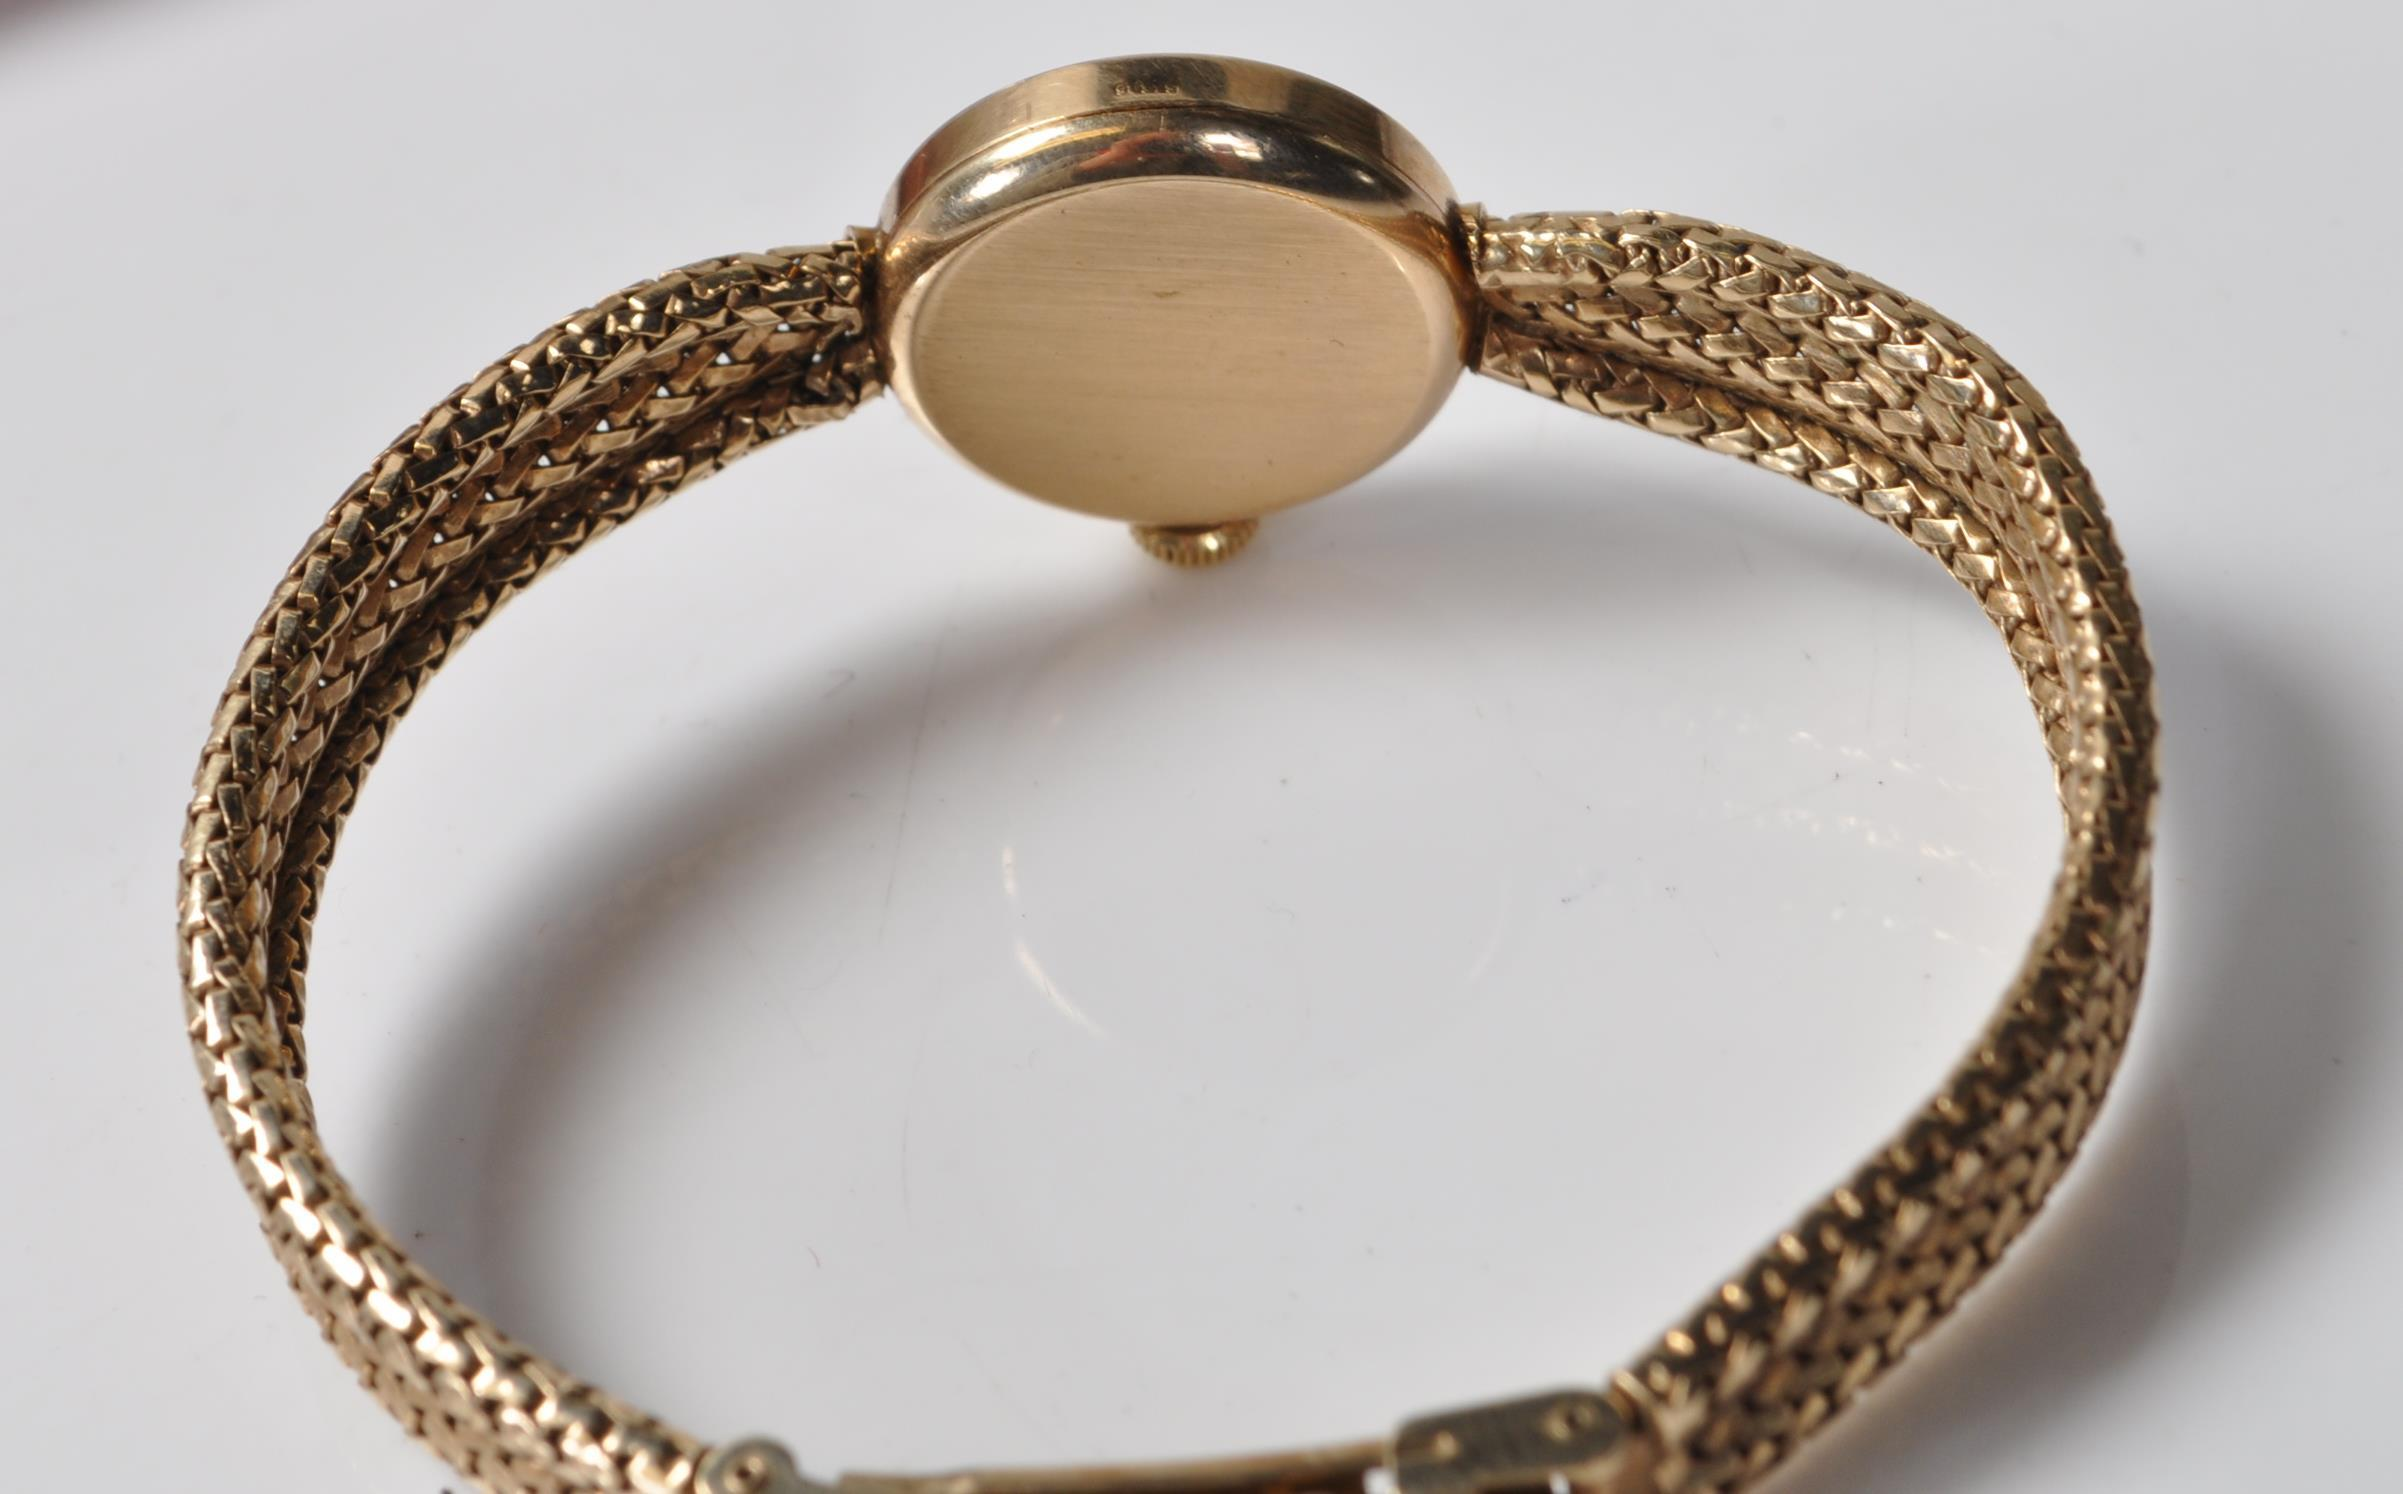 9CT GOLD OMEGA LADIES WATCH - Image 6 of 15